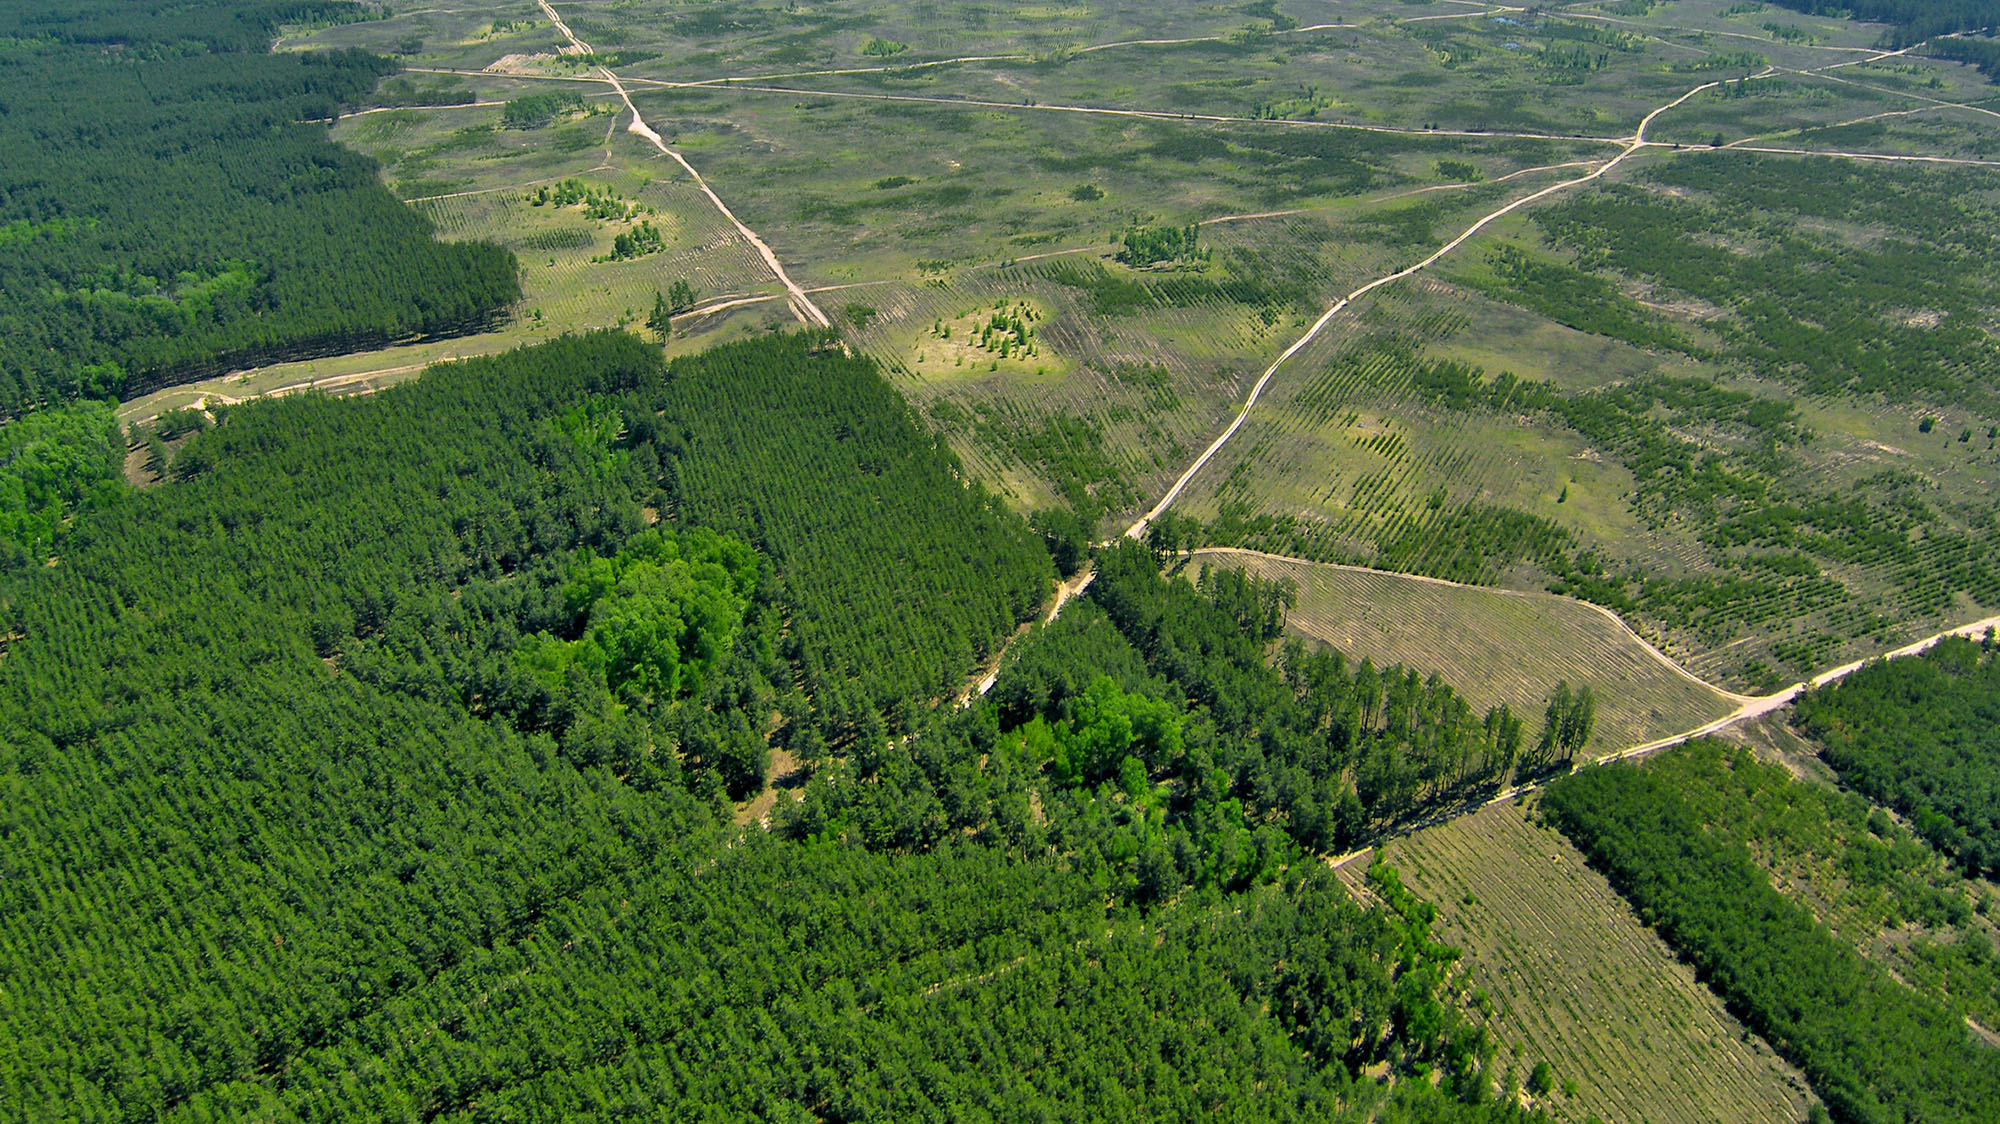 Despite deforestation, Earth has become greener